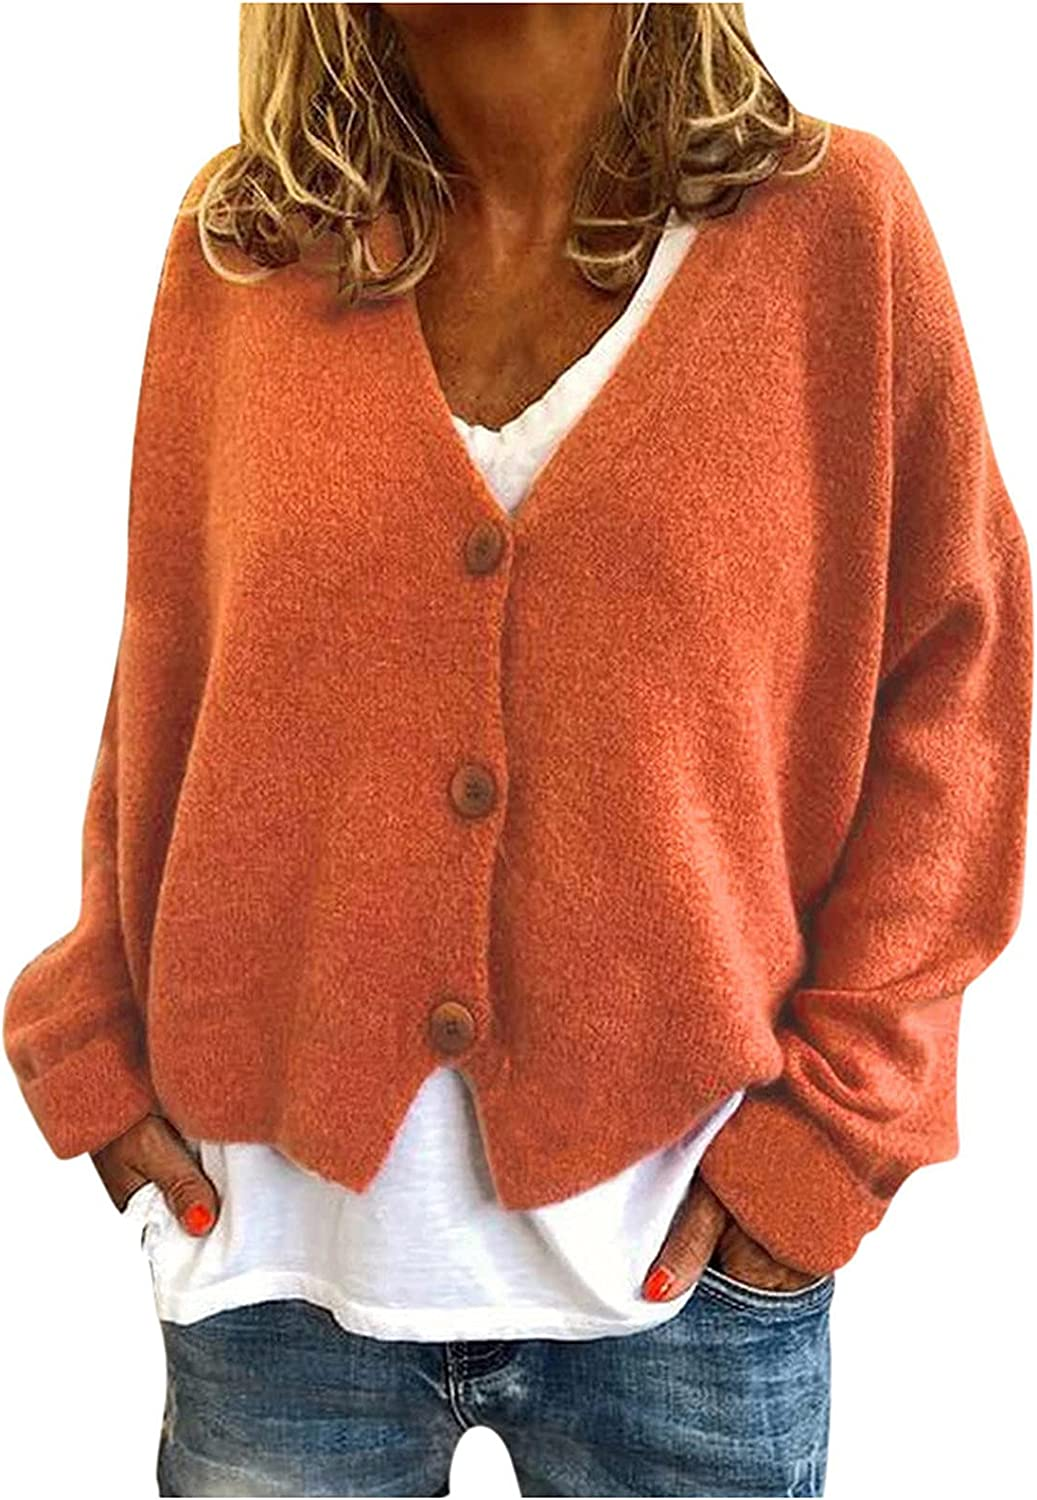 Womens Knitted Cardigan Button Up Long Sleeve Plus Size Lightweight Coat Soft Sweater Jacket Fall Fashion Thin Outwear